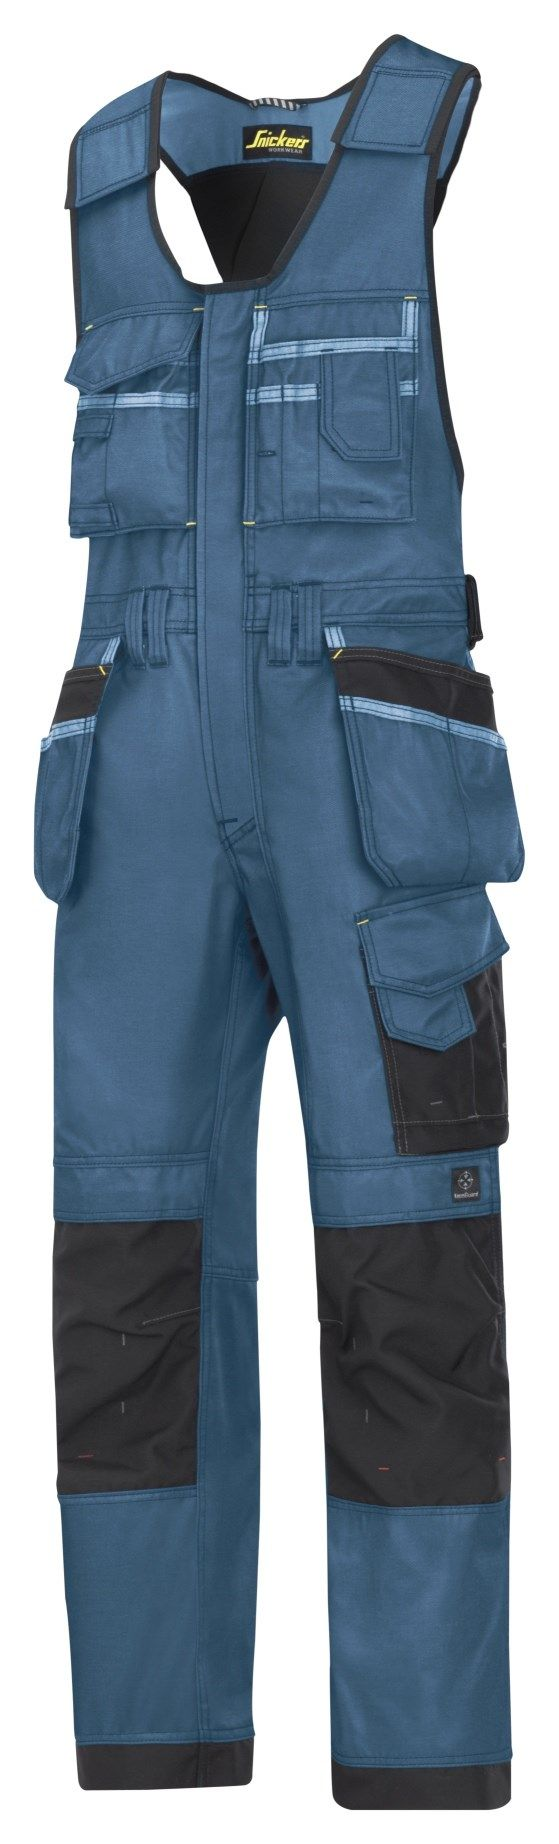 Extremely hard-wearing onepiece trousers with holster pockets made in dirt repellent DuraTwill fabric. Features an advanced cut with Twisted Leg™ design, Cordura® reinforcements for extra durability and Velcro tool fasteners, plus advanced knee protection and a comprehensive range of pockets.